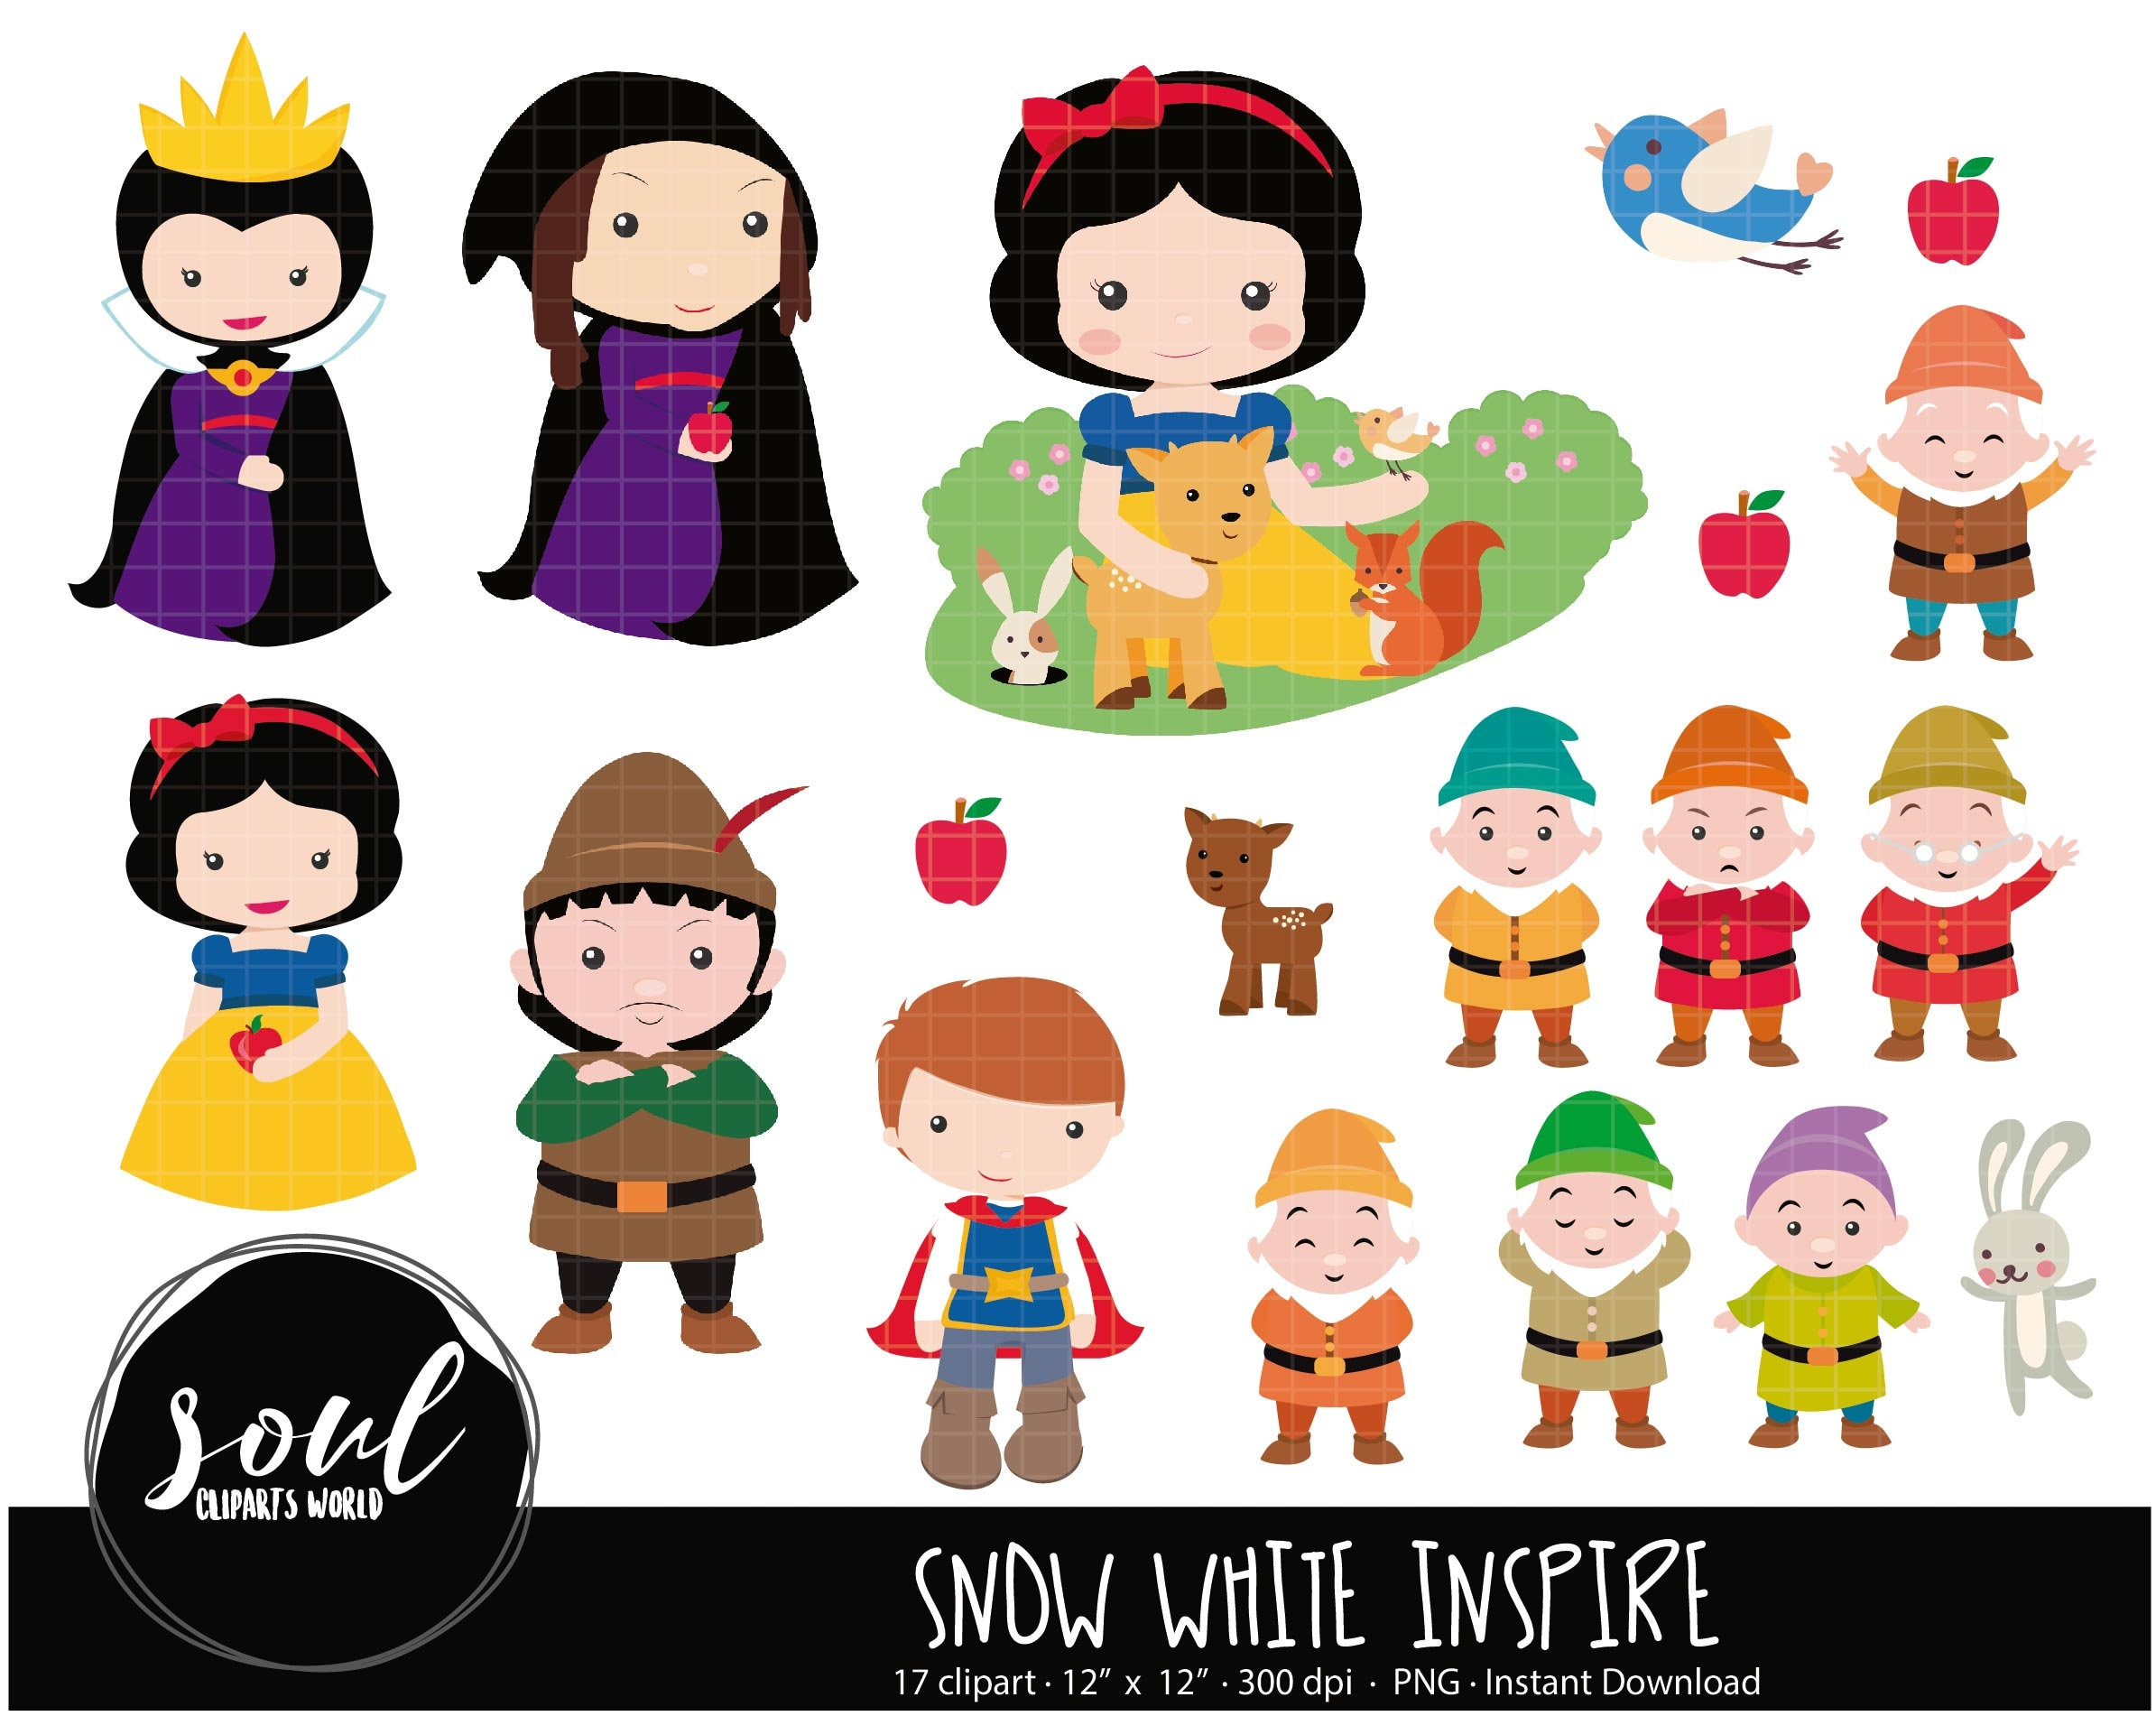 COD456-Snow white clipart/disney inspired cliparts ...